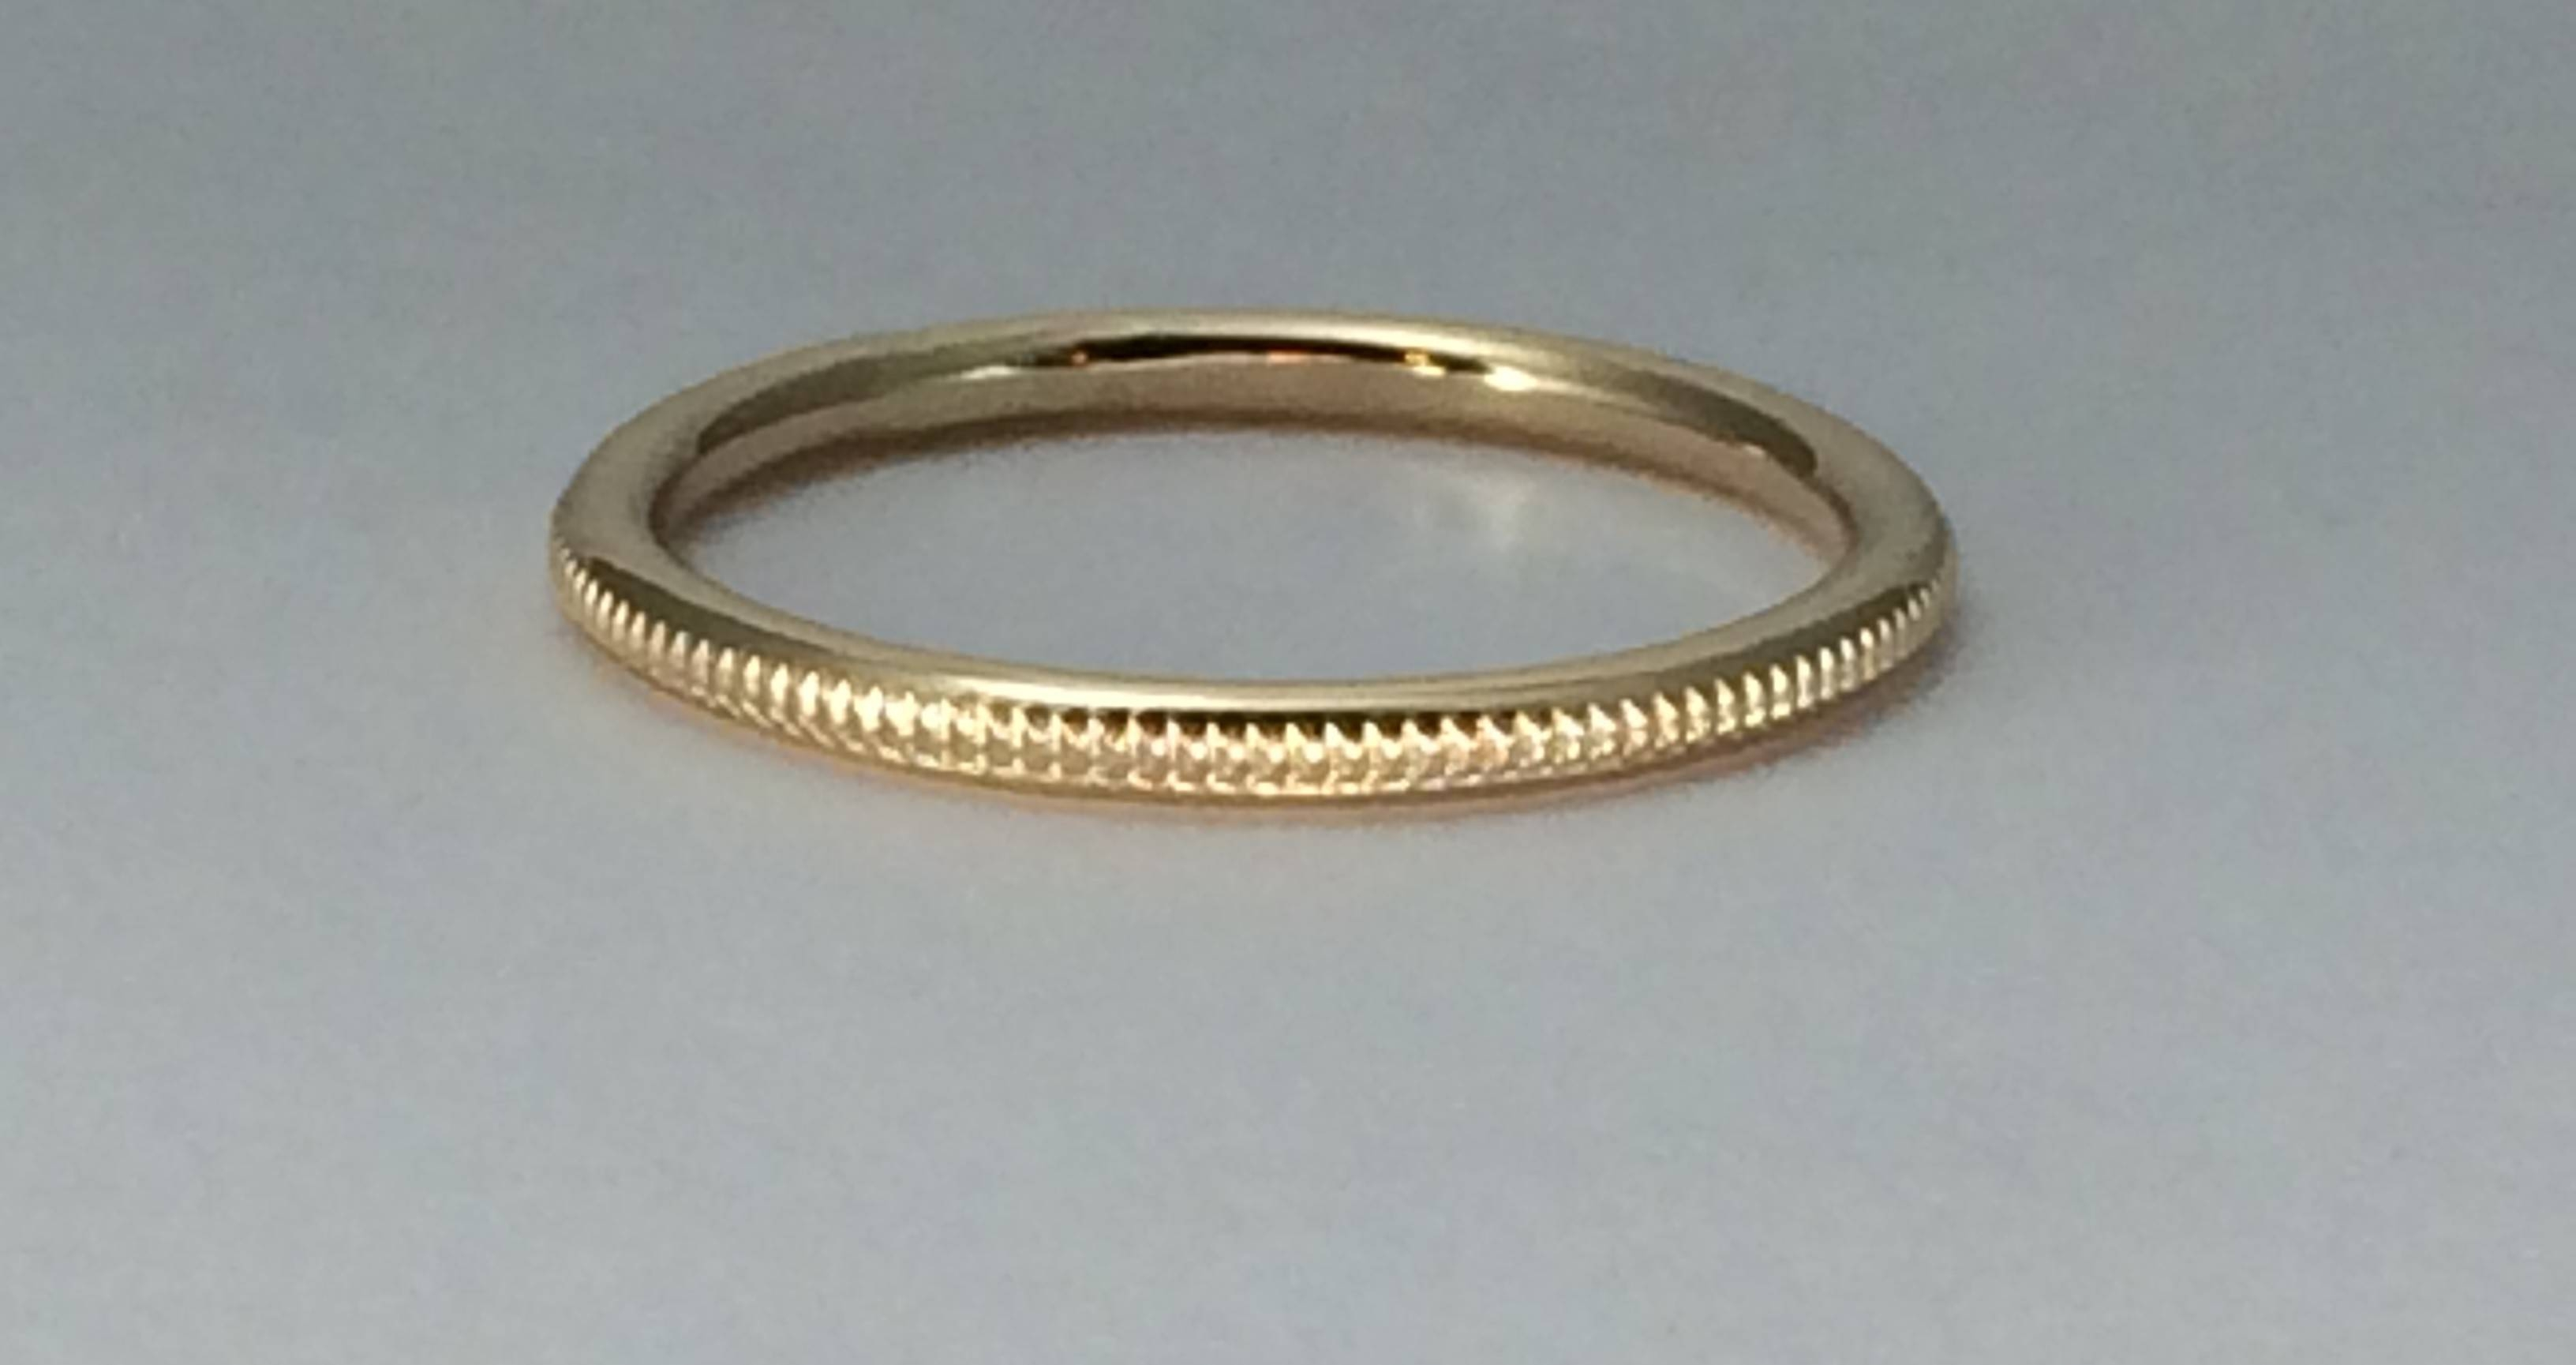 14Kt Gold Milgrain Wedding Band, Raised Milgrain, Rose Gold Intended For Millgrain Wedding Bands (Gallery 1 of 15)